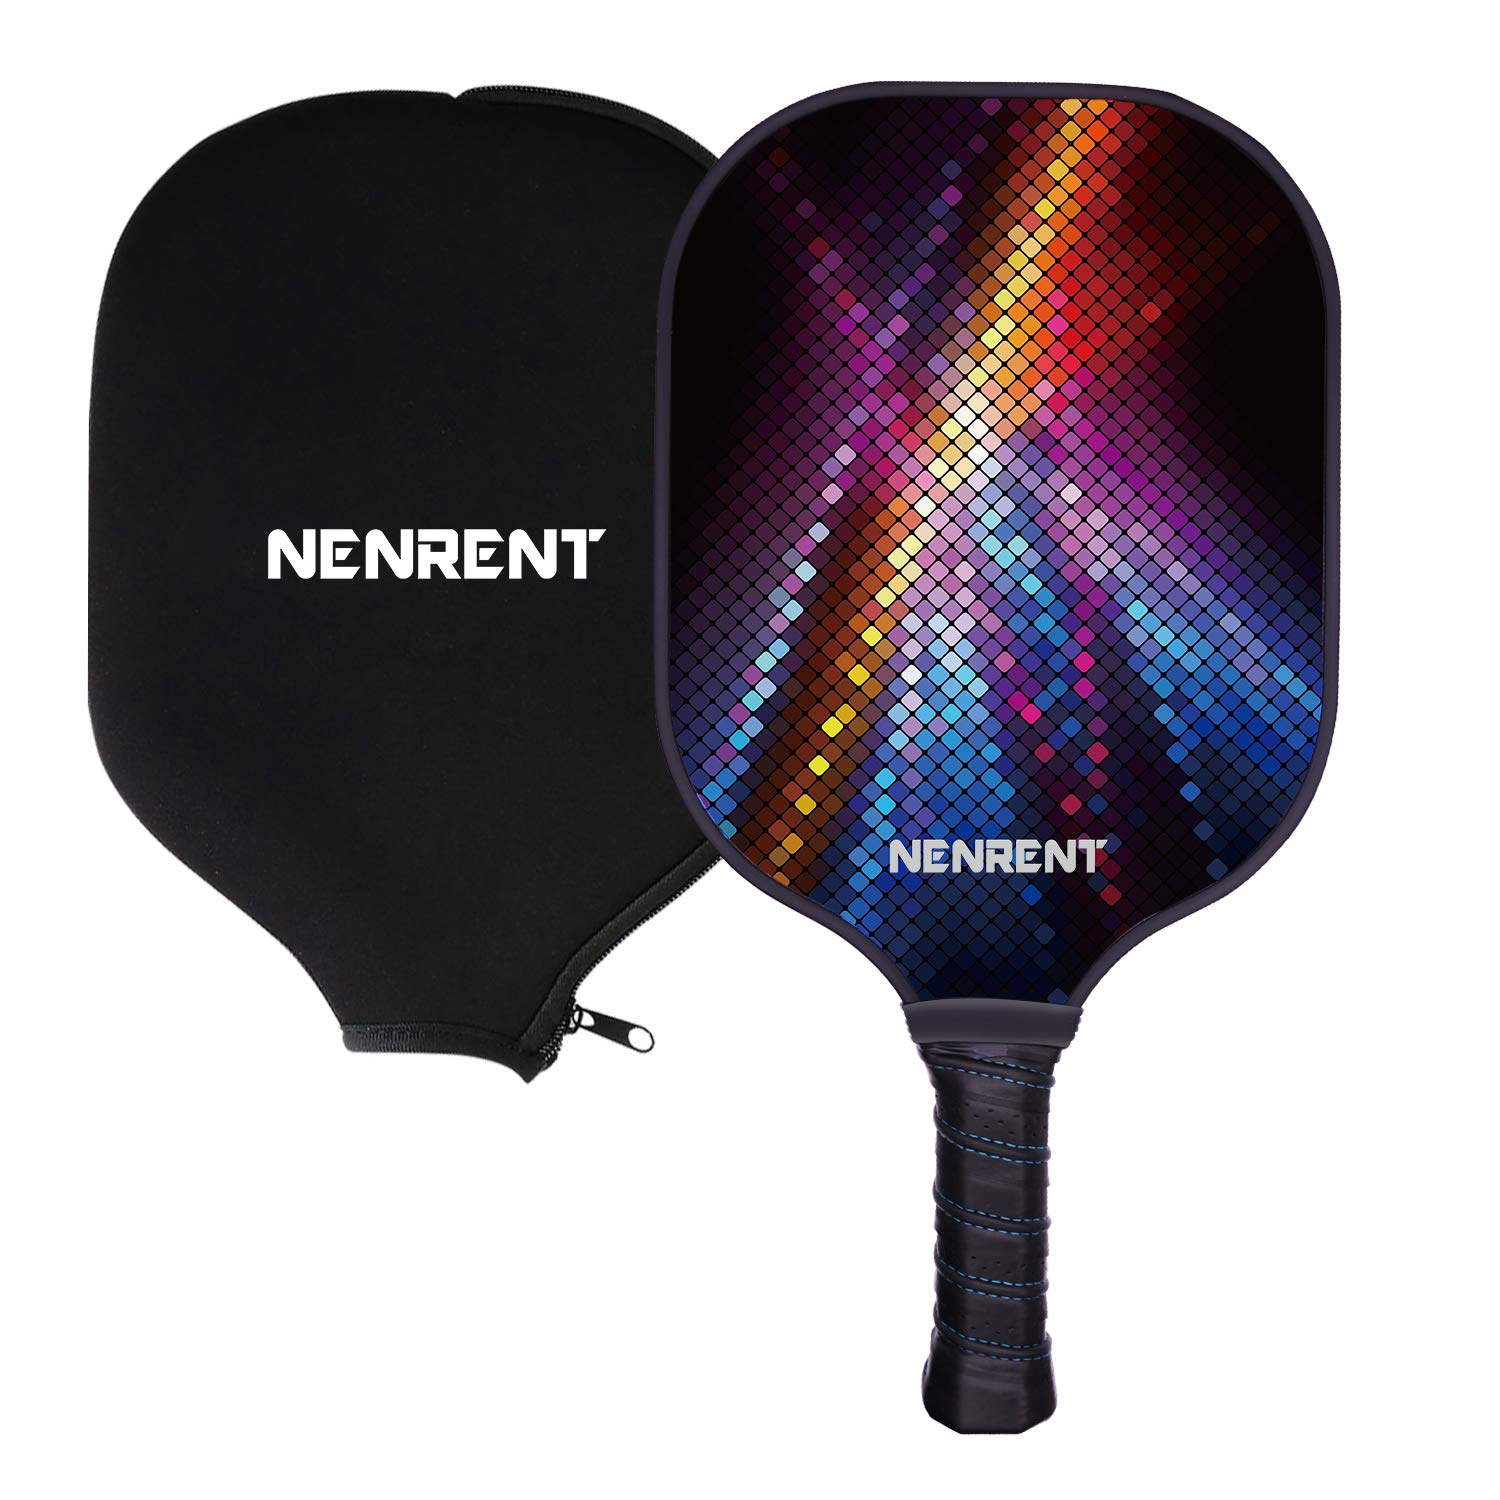 NENRENT Pickleball Paddle-Premium Graphite Pickleball Racket Honeycomb Composite Core Paddle Set Lightweight Carbon Fiber Pickleballs Racquet Edge Guard Ultra Cushion Grip Paddle with Cover 7.8-8 OZ by NENRENT